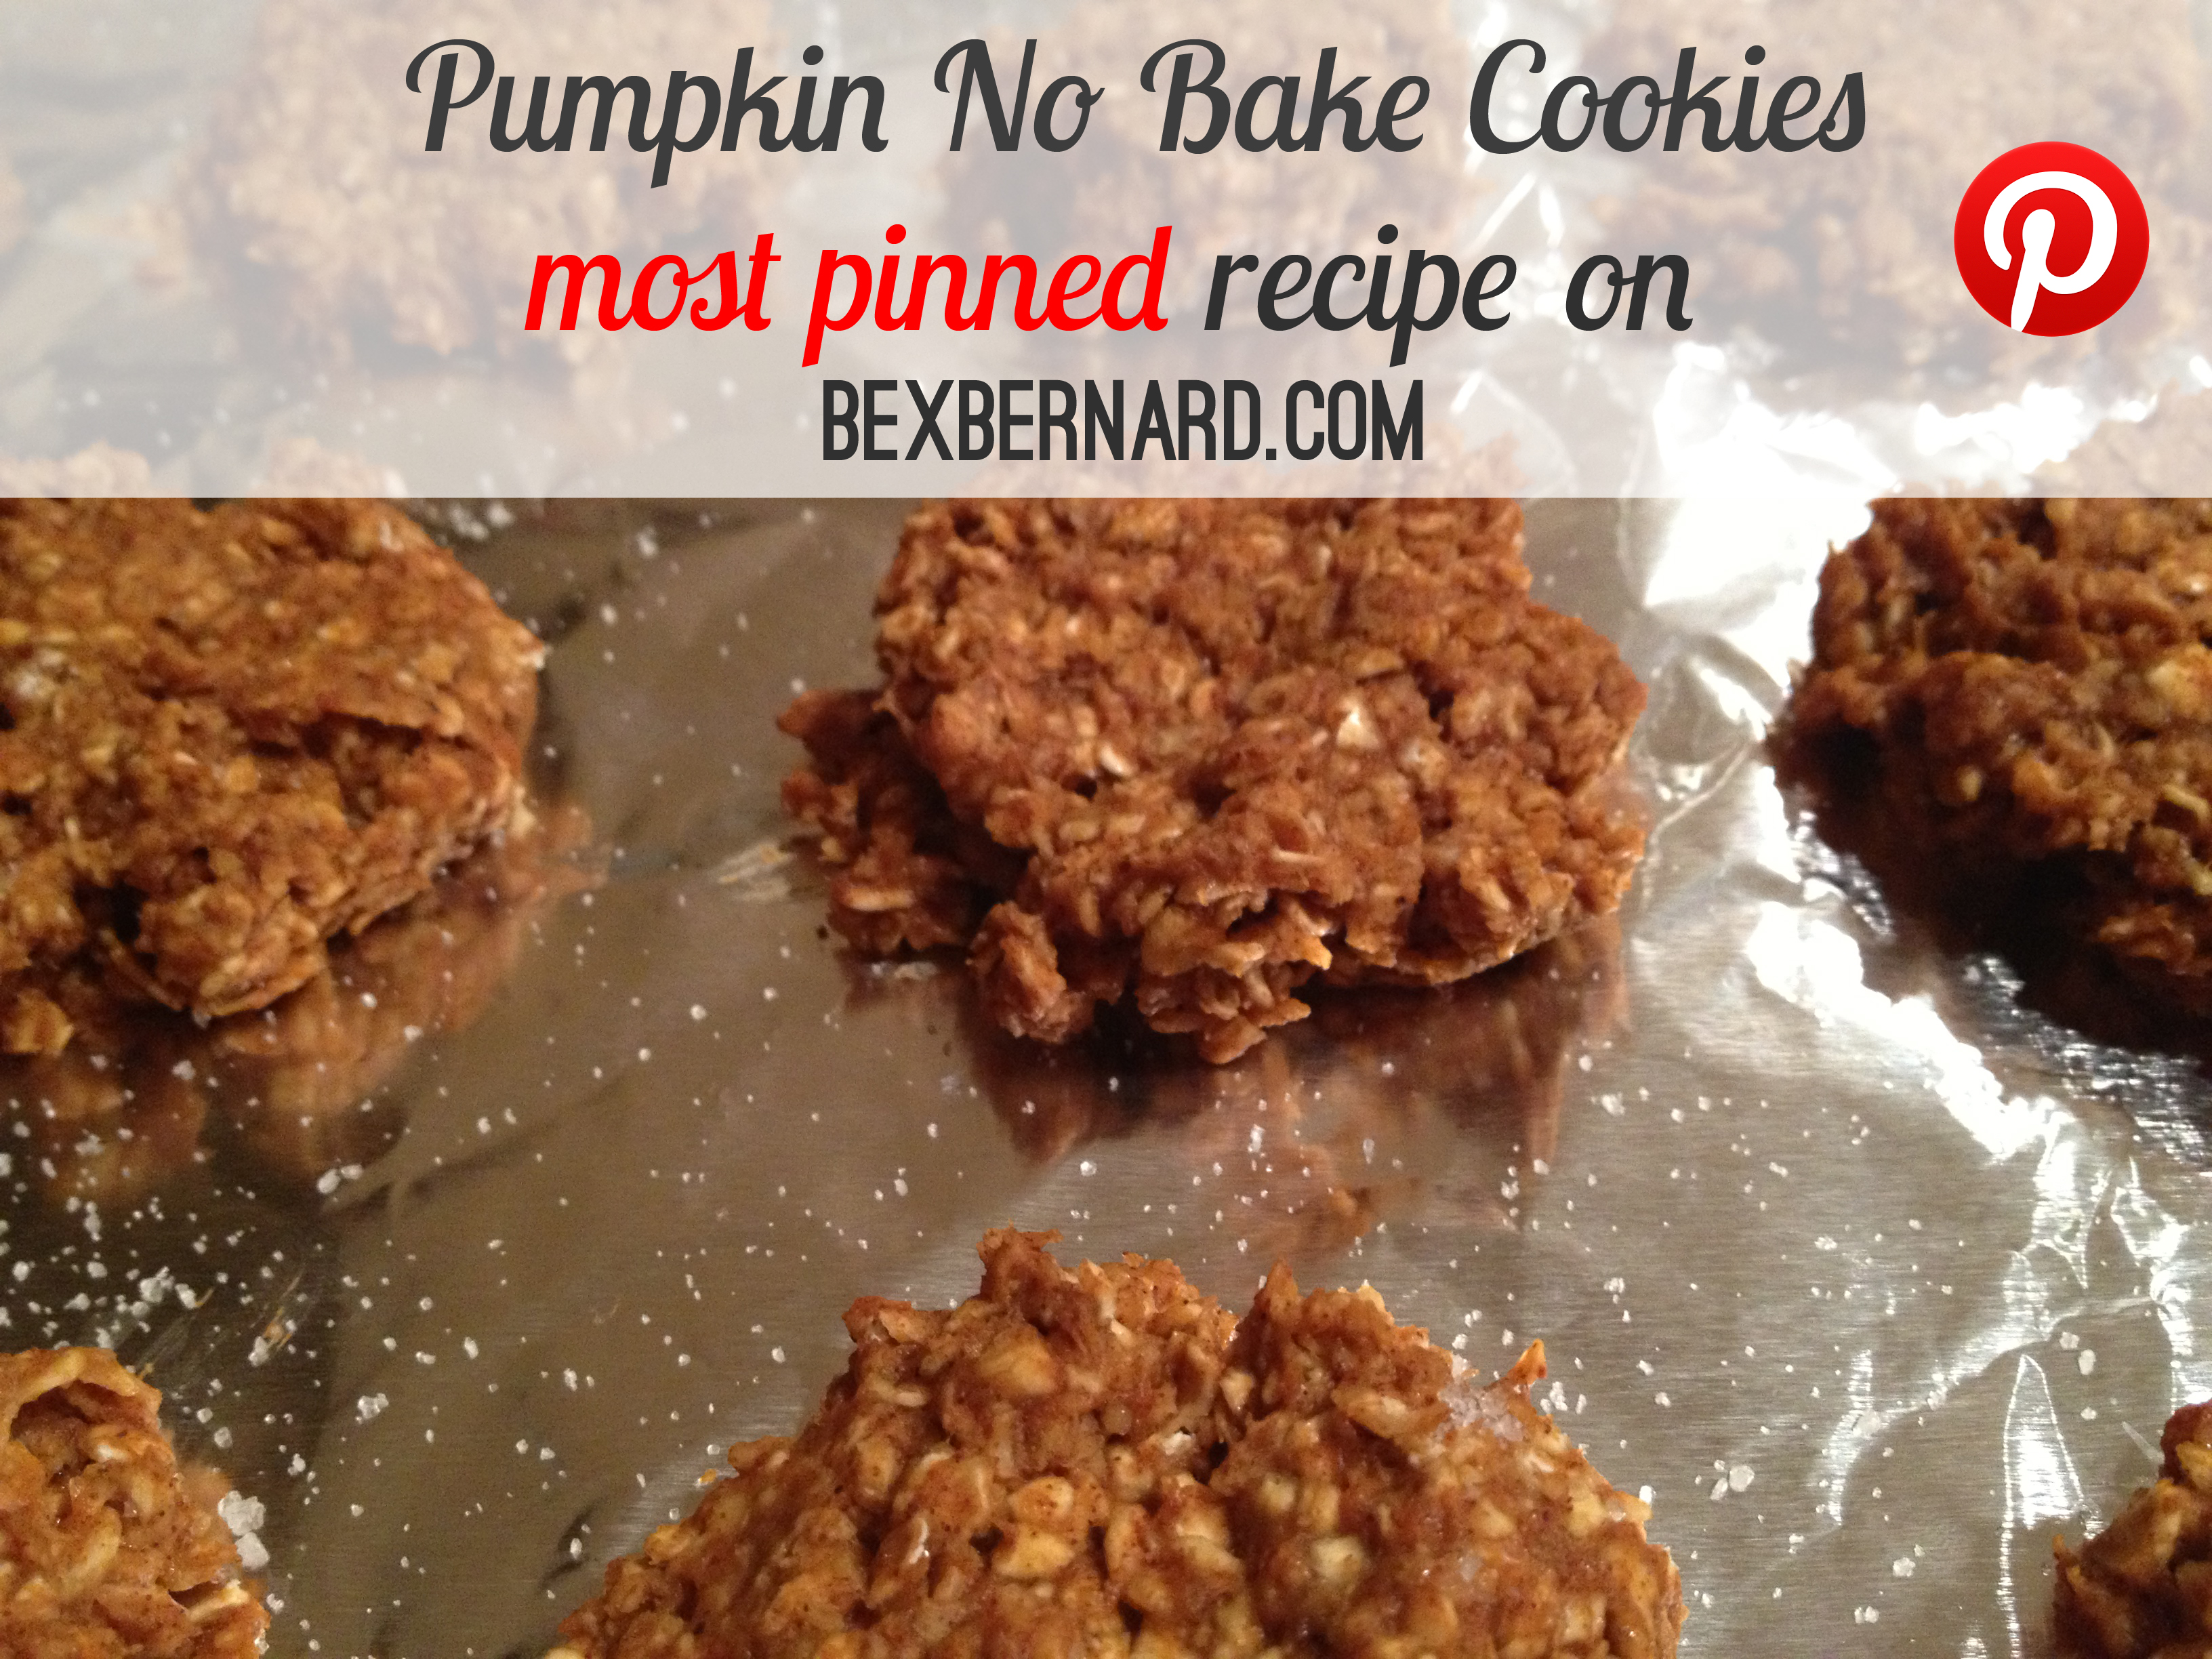 pumpkin no bake cookies recipe. healthy dessert with oats | bexbernard.com